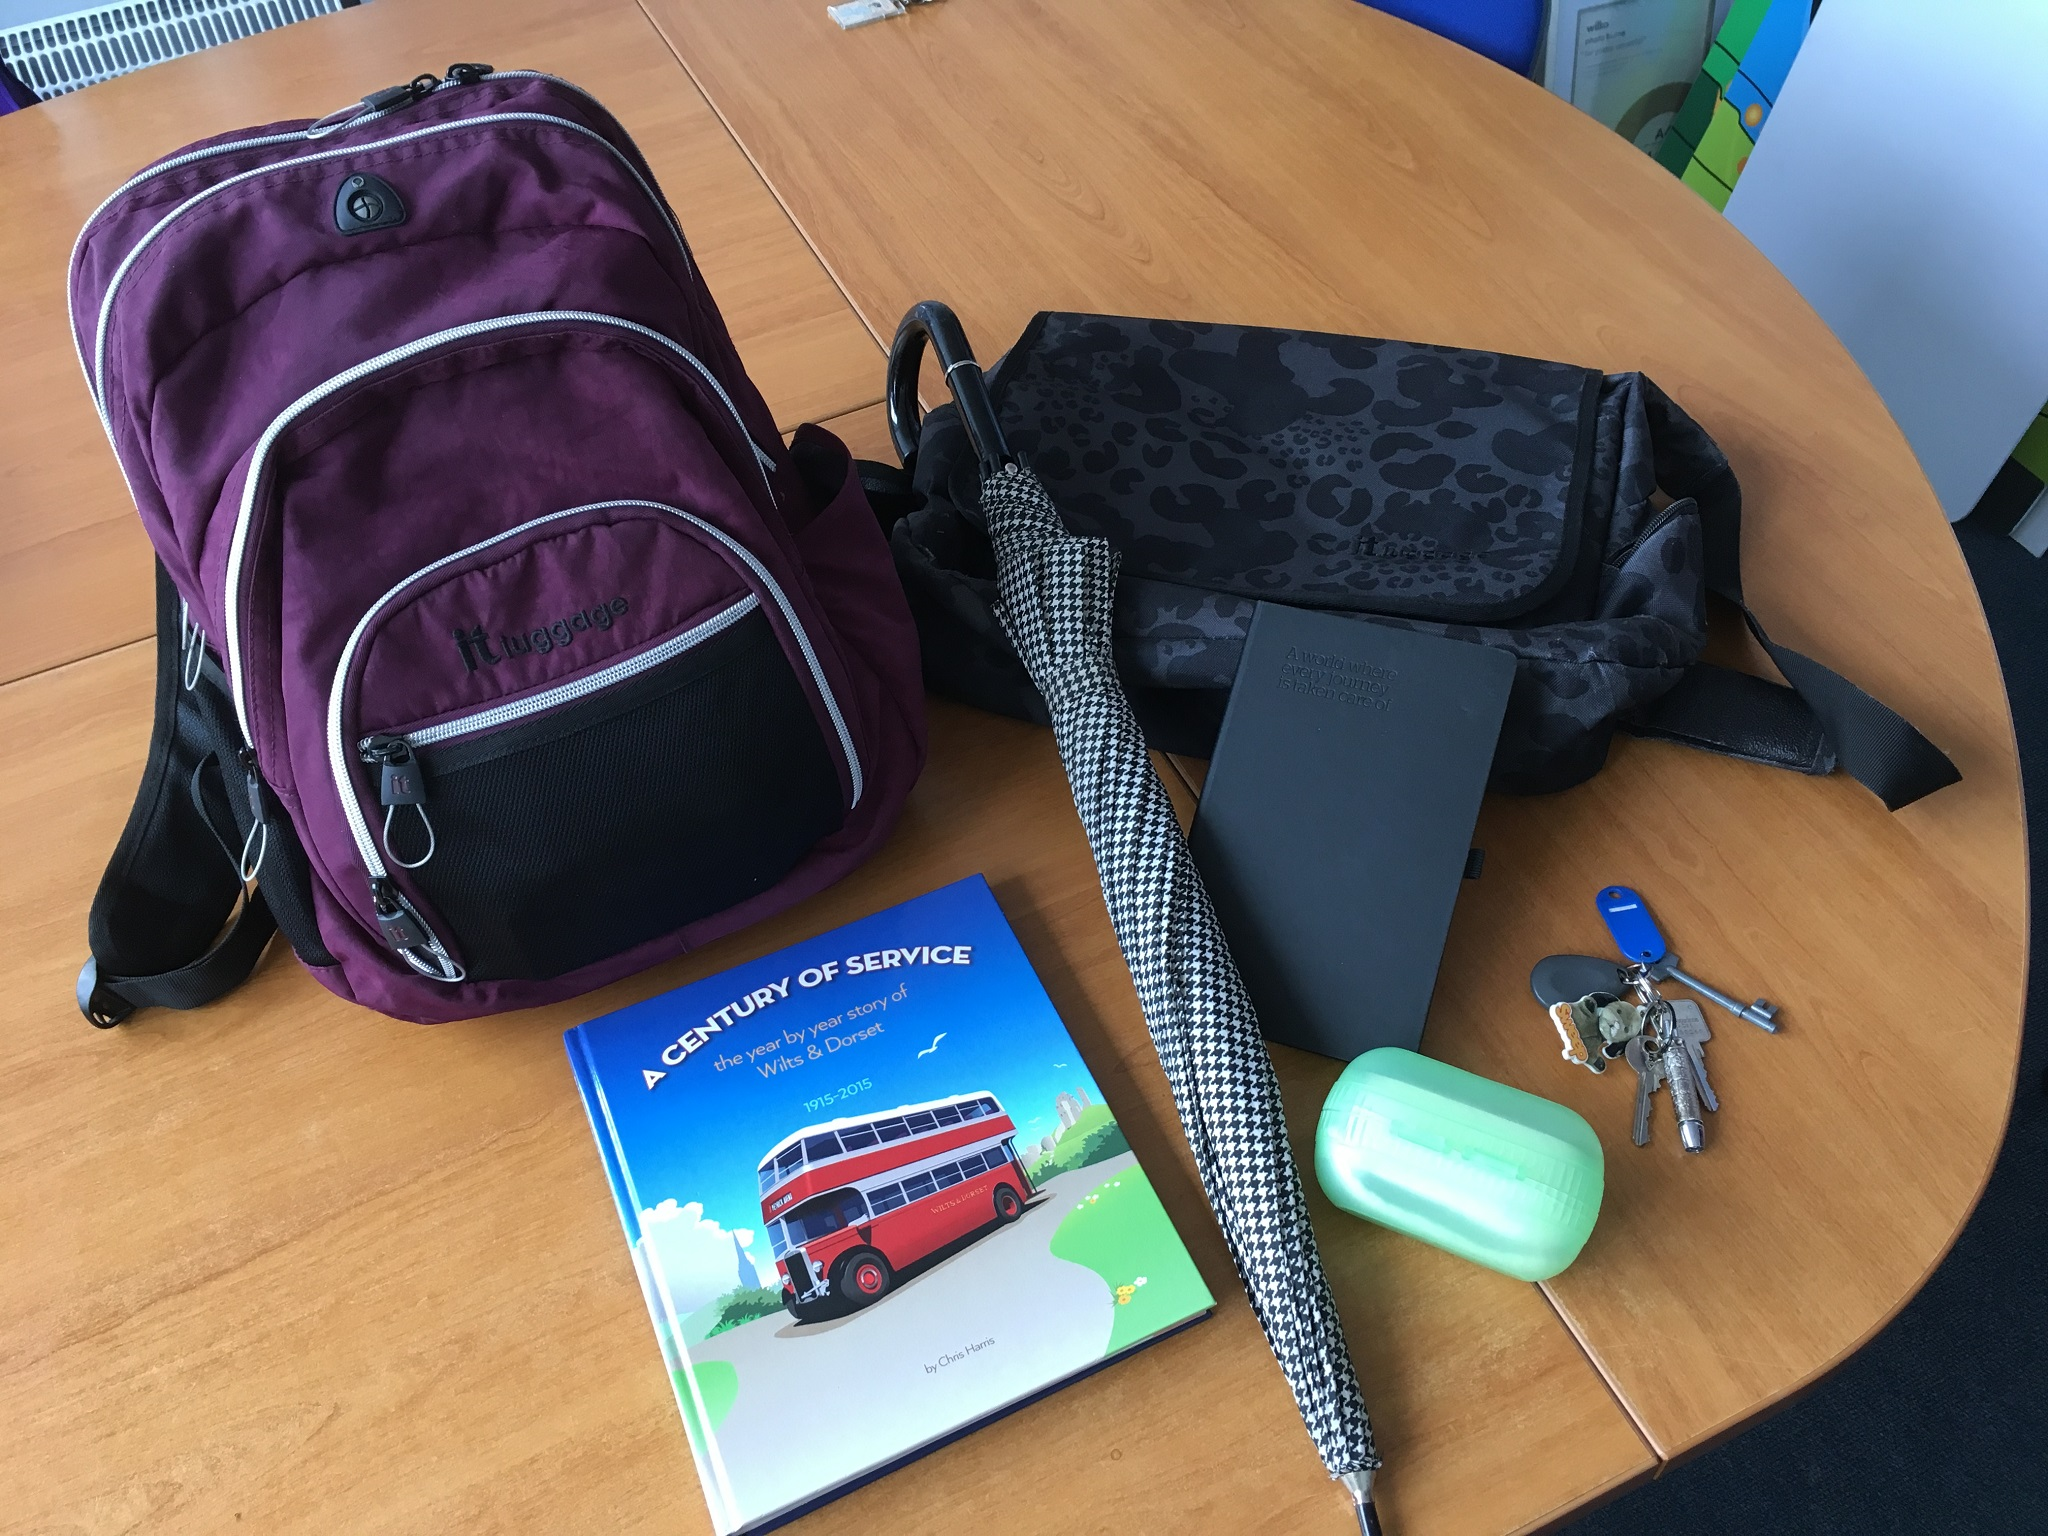 Photo of lost property items